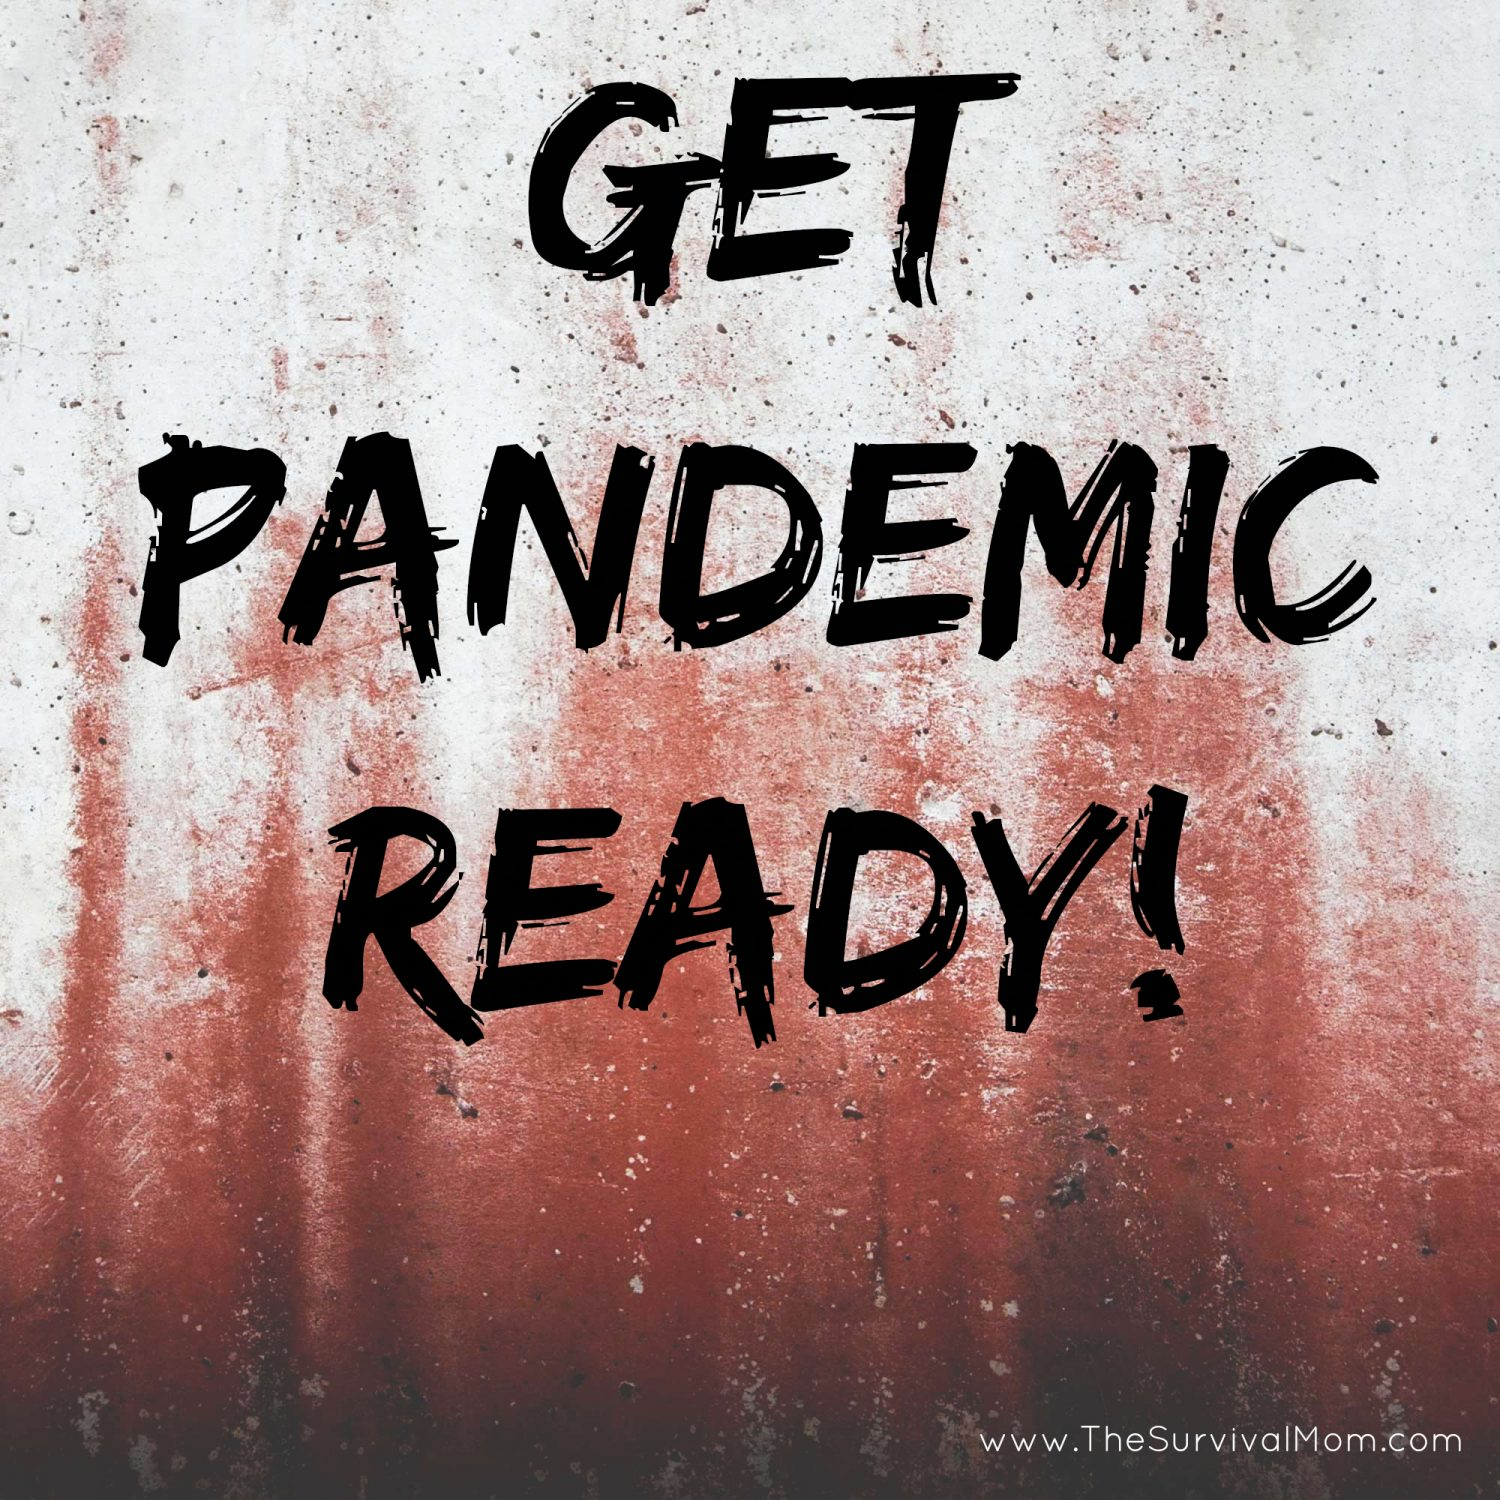 Get: Get Pandemic Ready